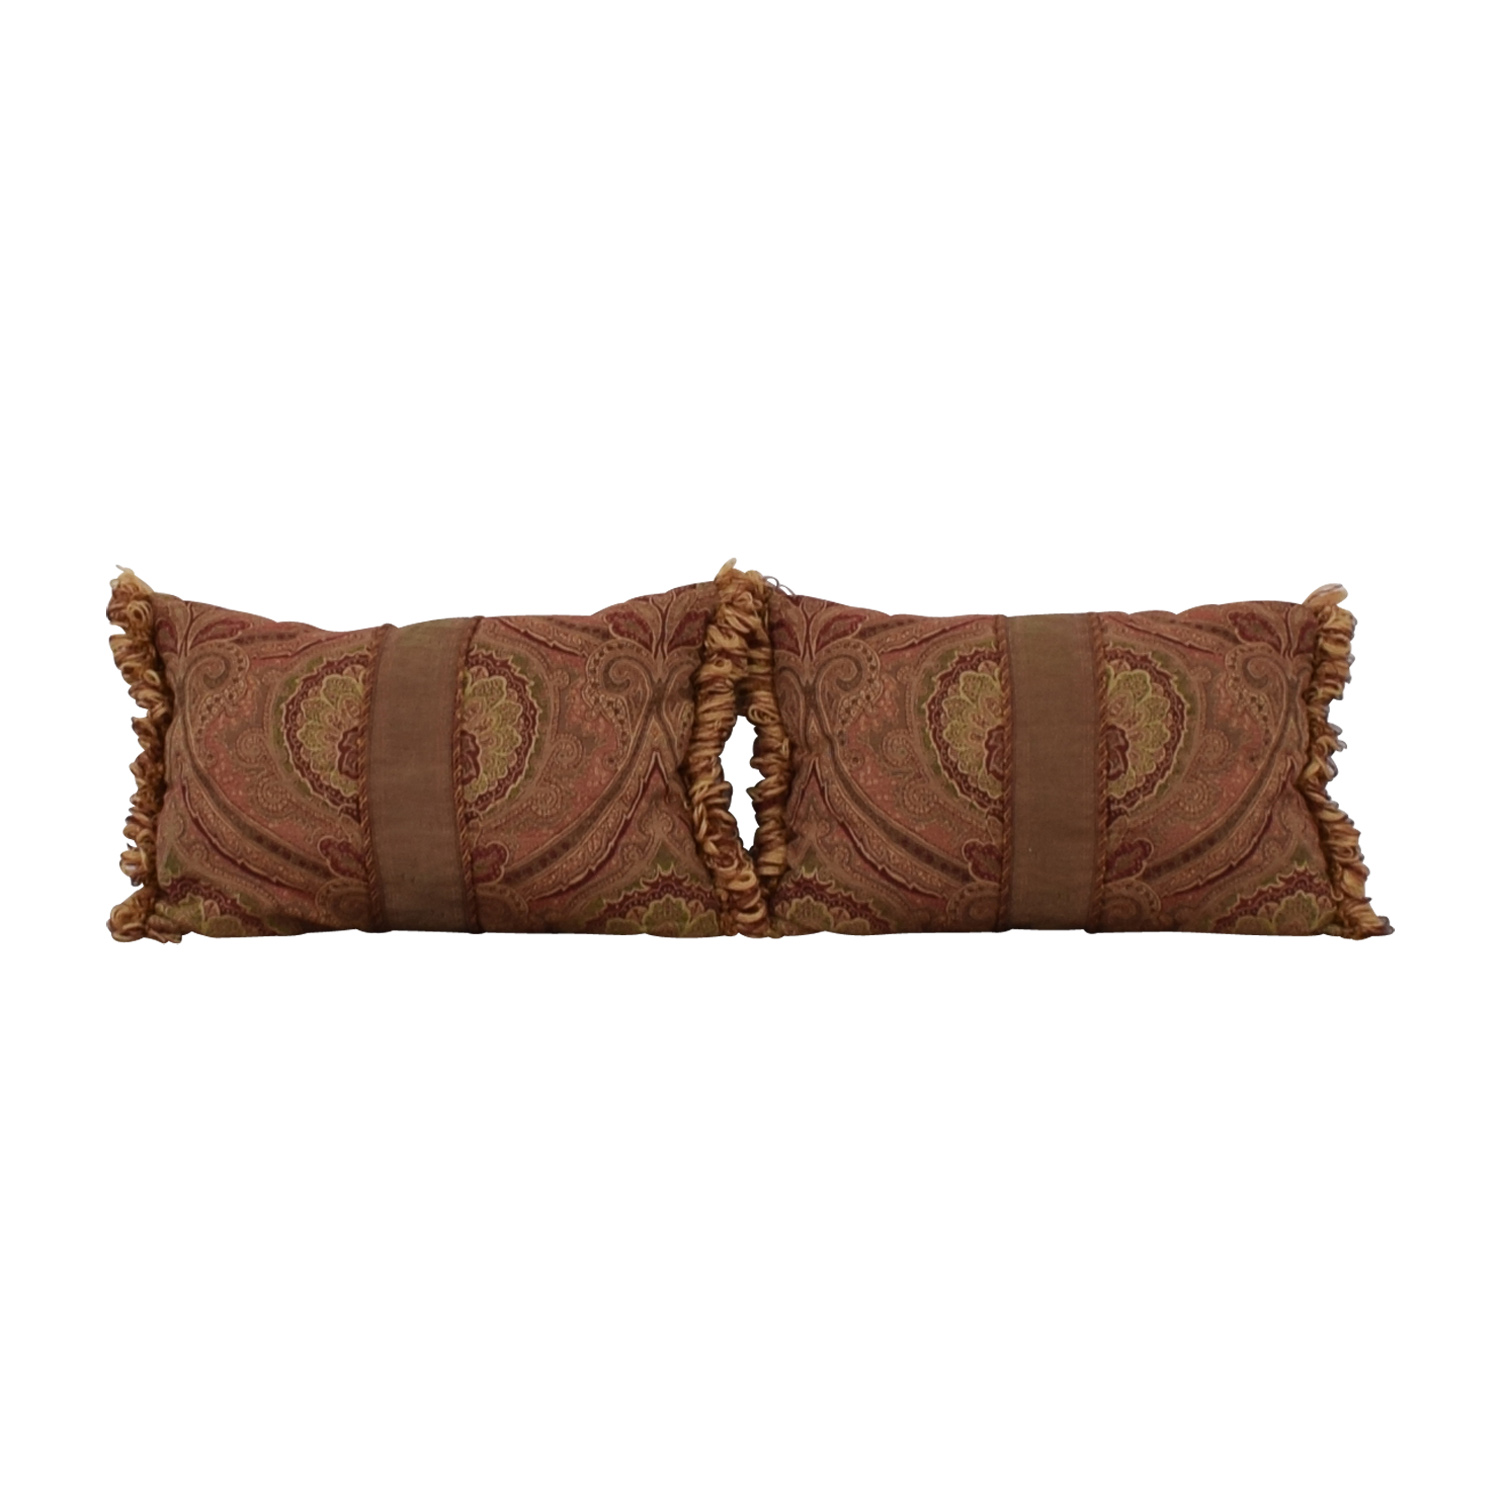 Paisley Decorative Pillows coupon